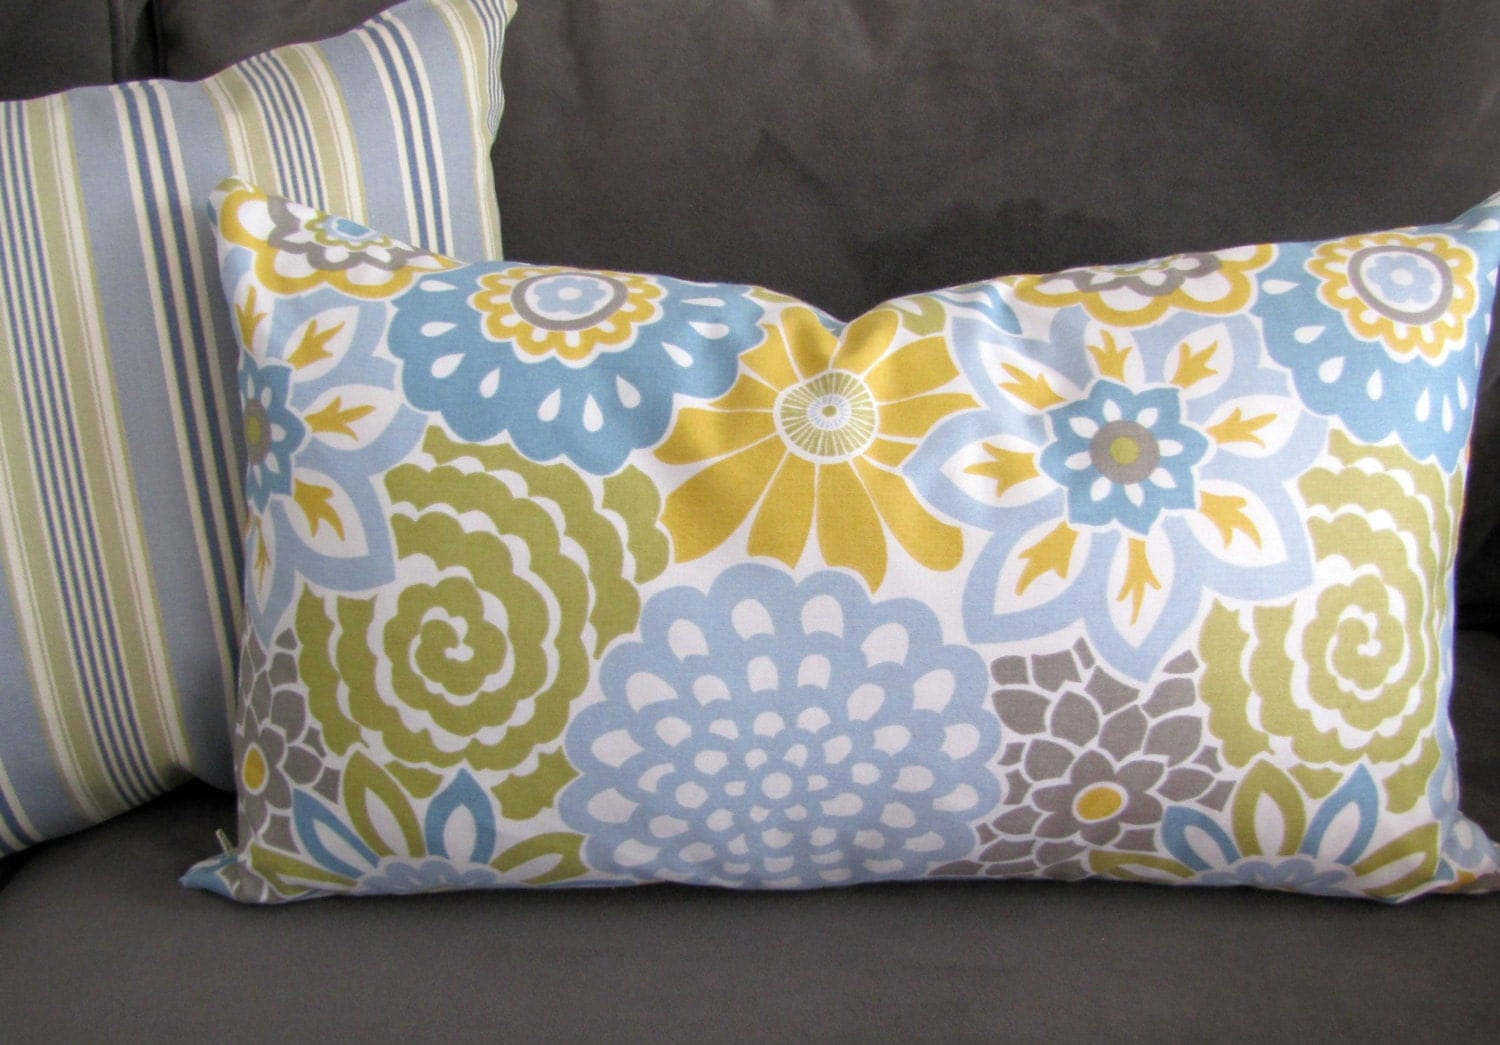 Modern Floral Pillows : Modern floral lumbar throw pillow shades of blue yellow